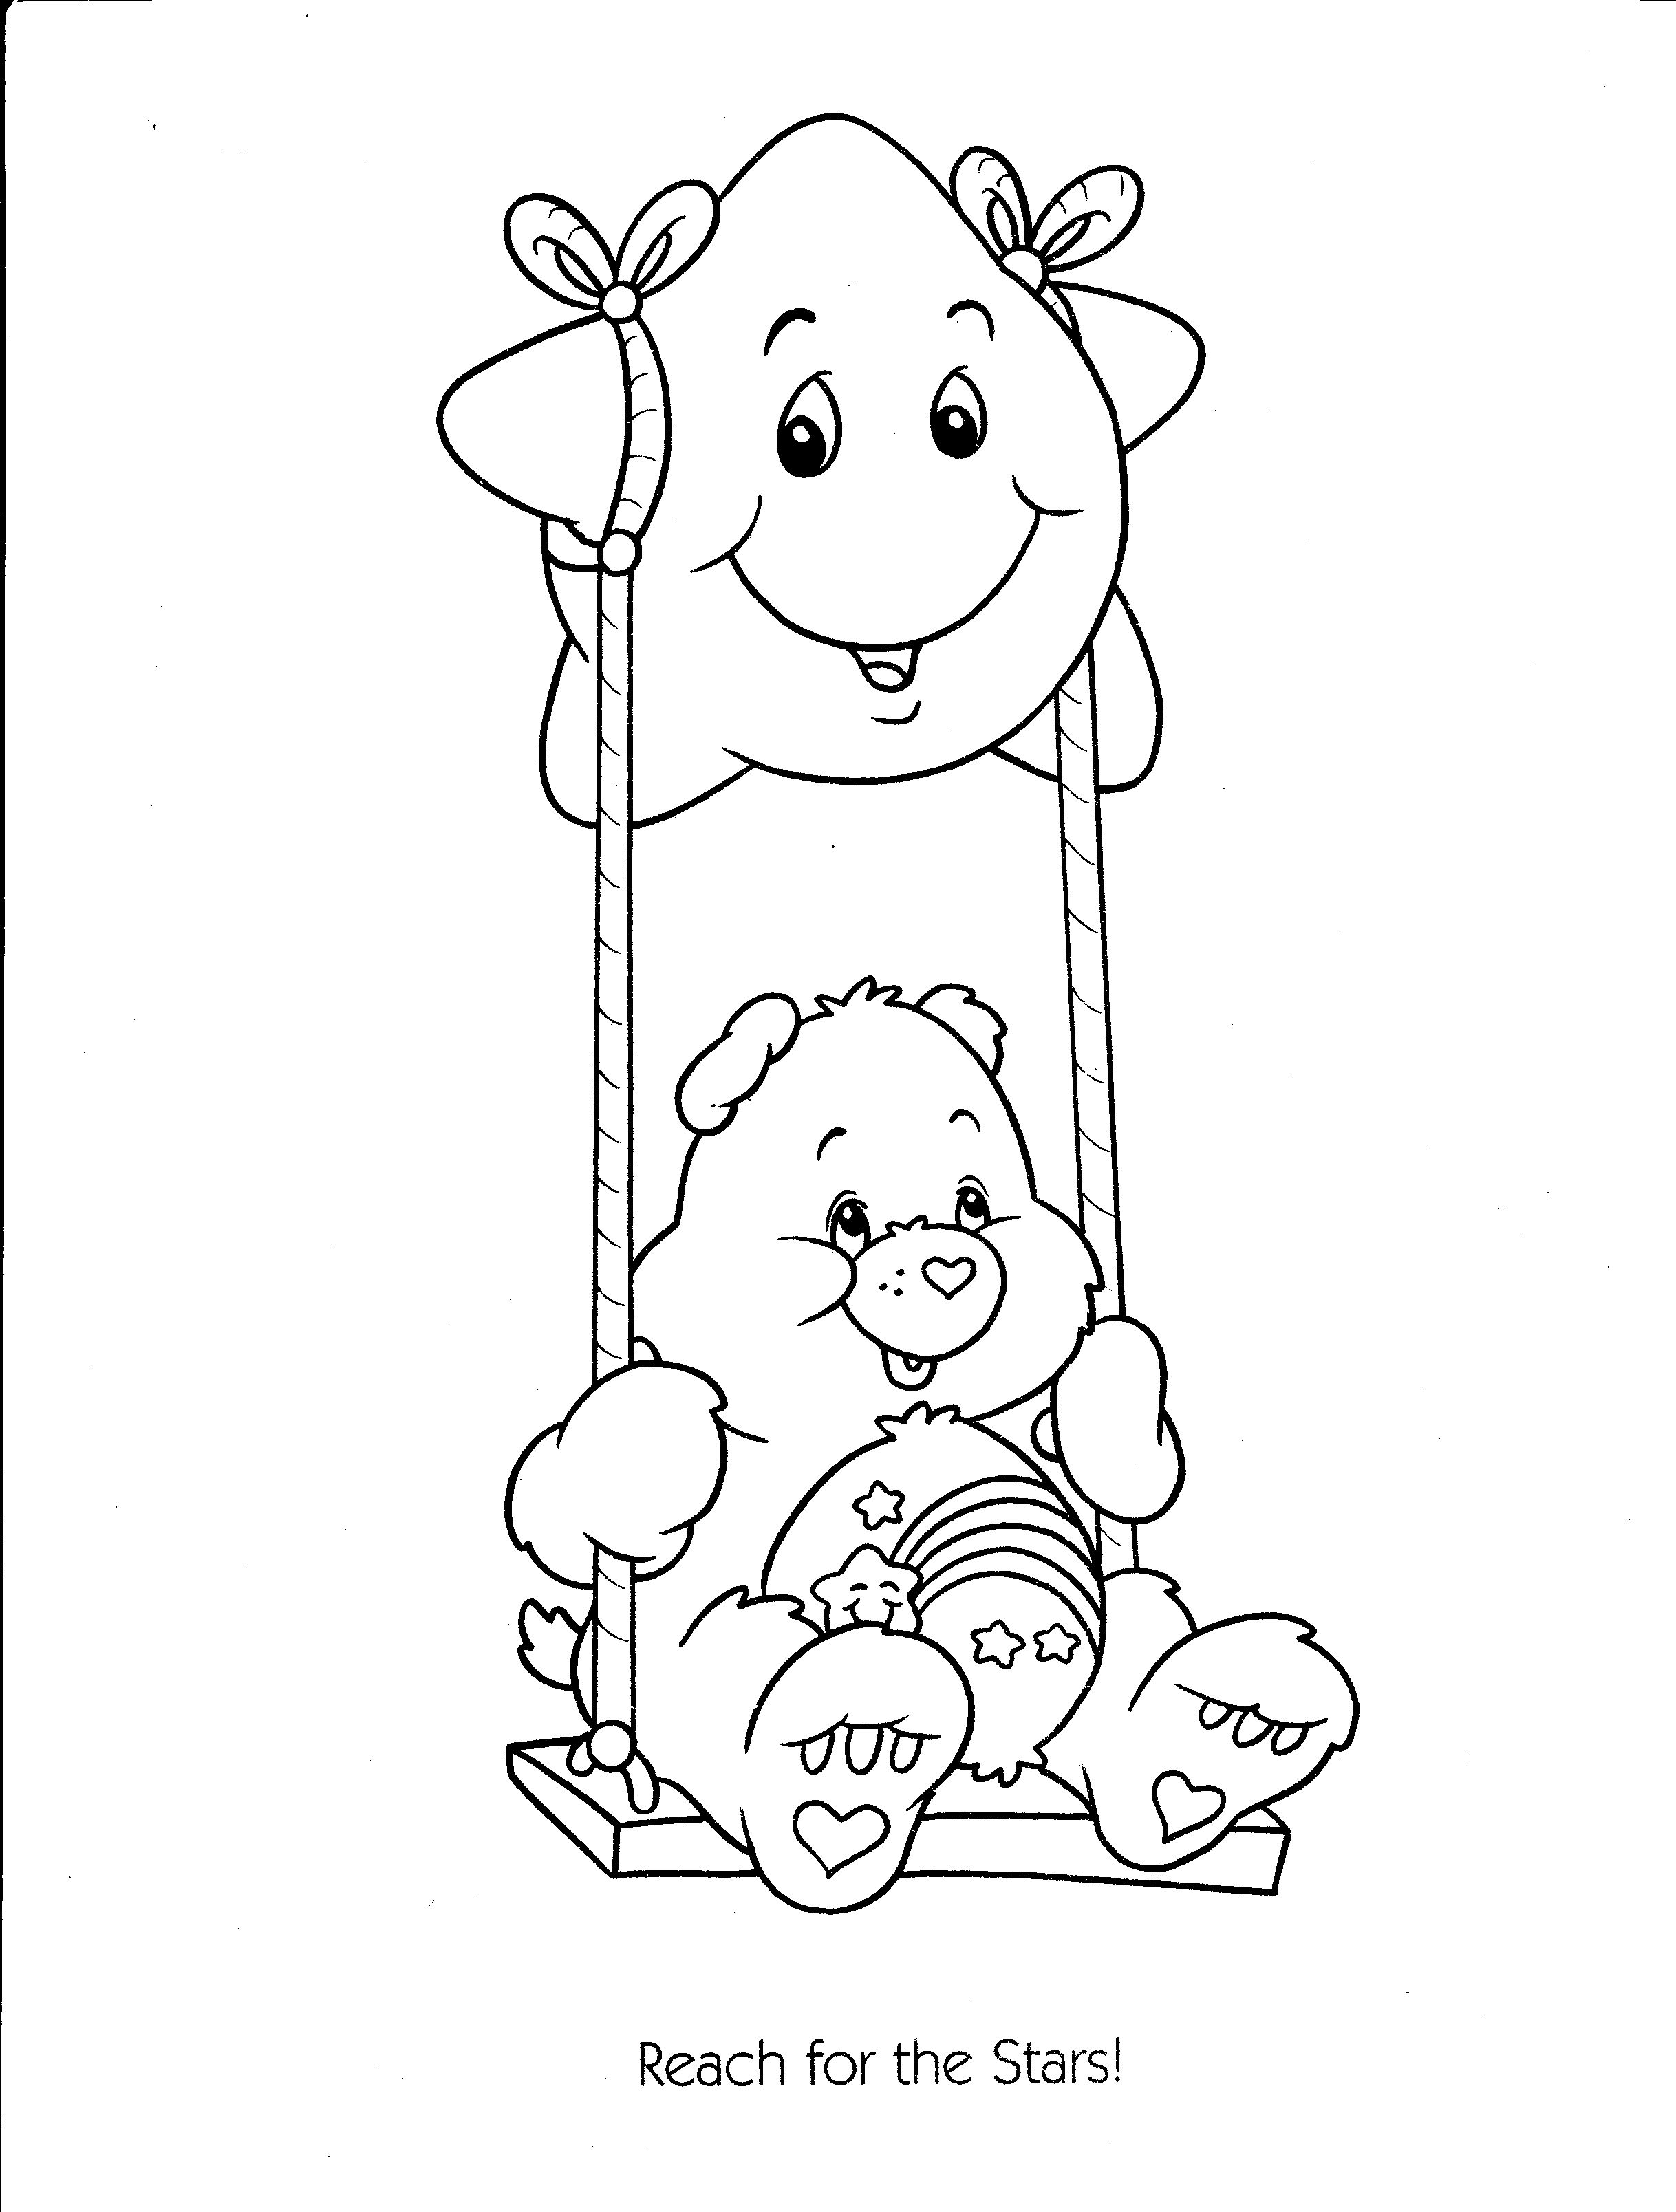 Troetelbeertjes106 20100508 1509313011 Jpg 2436 3216 Bear Coloring Pages Coloring Pages Coloring Books